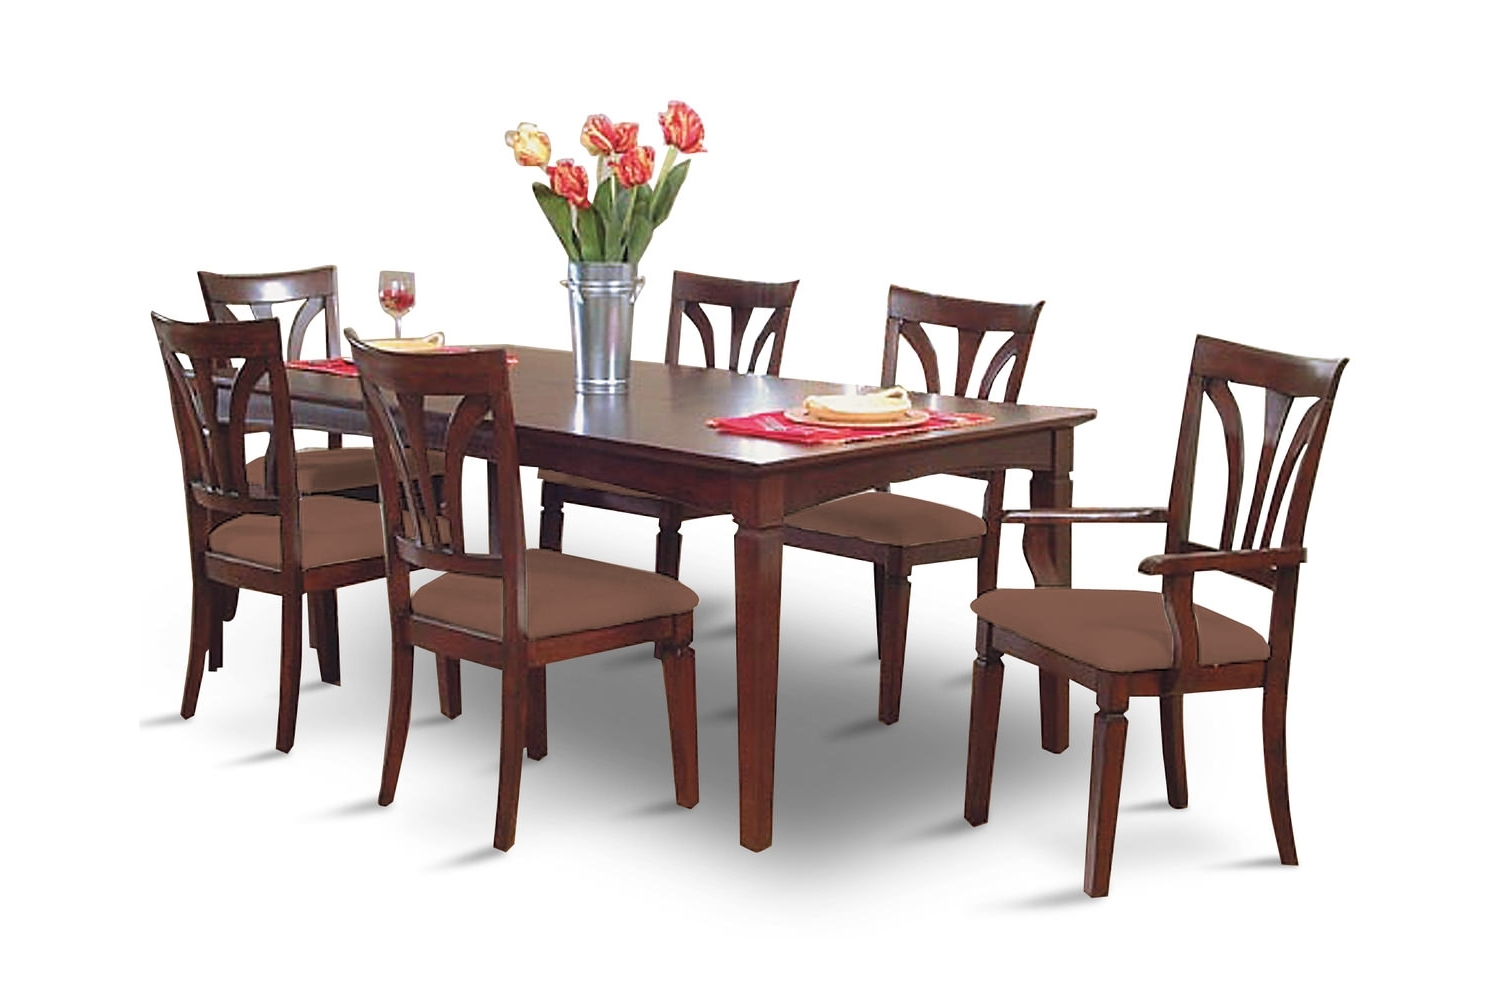 Chapleau Ii 7 Piece Extension Dining Table Sets With Regard To Well Known Dining Sets – Kitchen & Dining Room Sets – Hom Furniture (View 13 of 25)